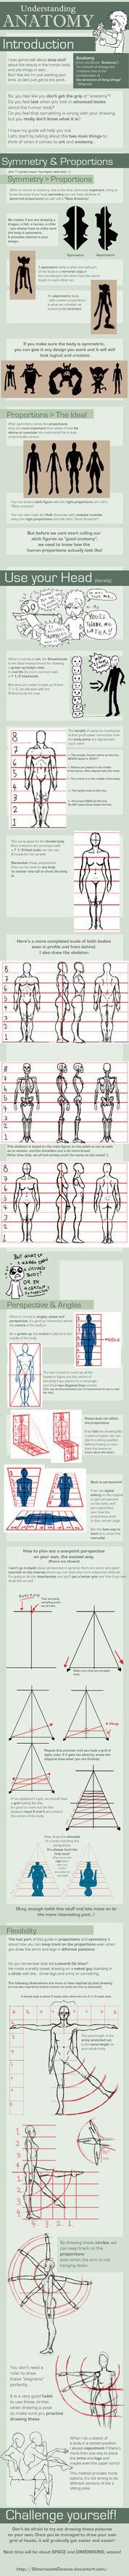 UNDERSTANDING ANATOMY: part I >> by =FOERVRAENGD on deviantART >> there's a whole series on anatomy drawing... SO useful. I've been needing something like this for a good long time.